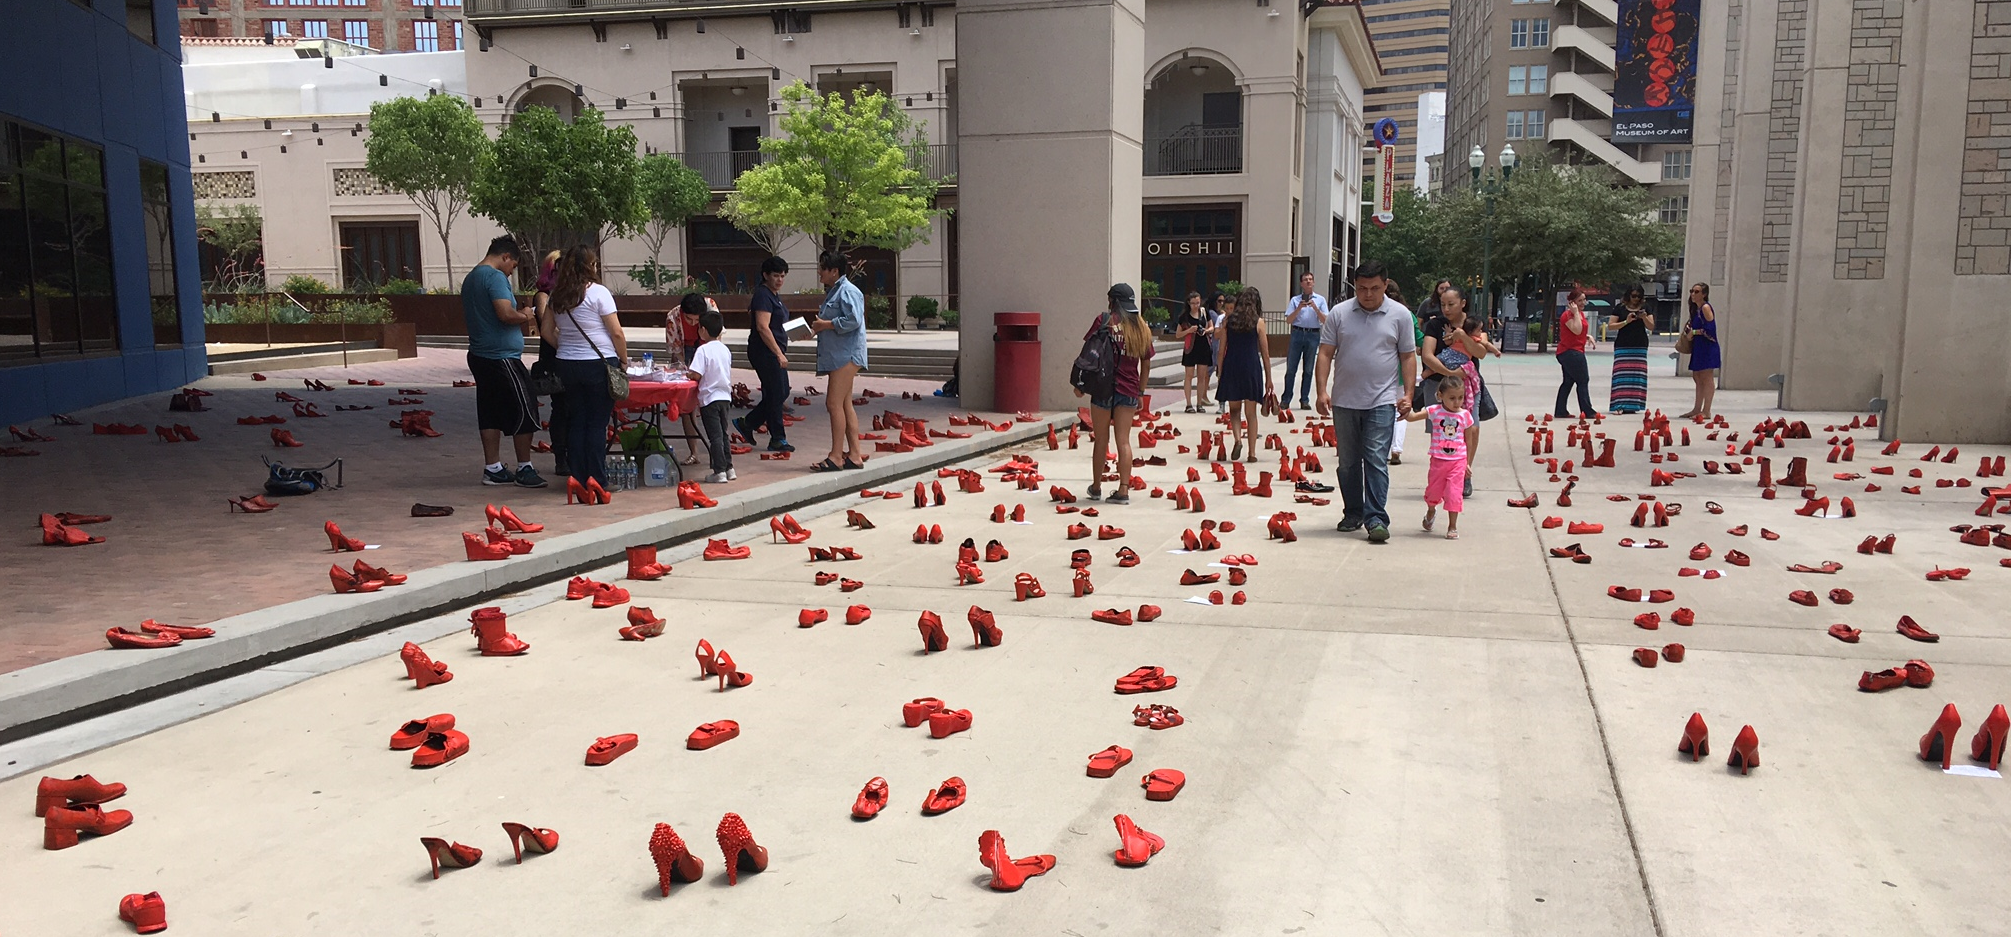 Zapatos Rojos, a public art installation that started in Ciudad Juarez in 2009 as a march of 33 absent women.